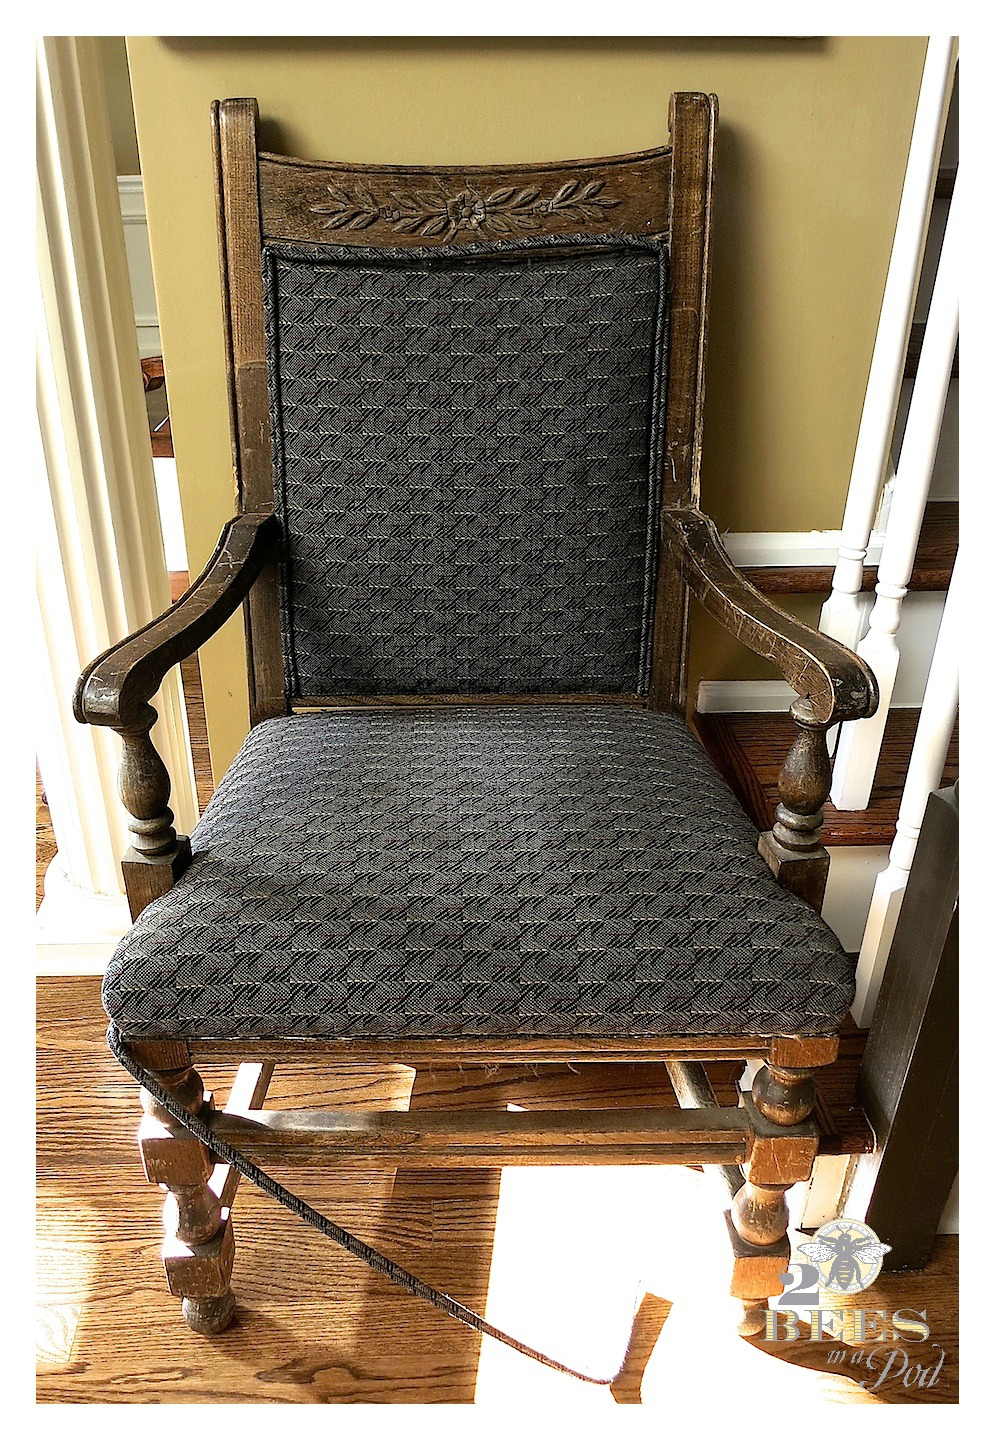 Painted desk chair makeover - yes, even the fabric is painted for a complete transformation